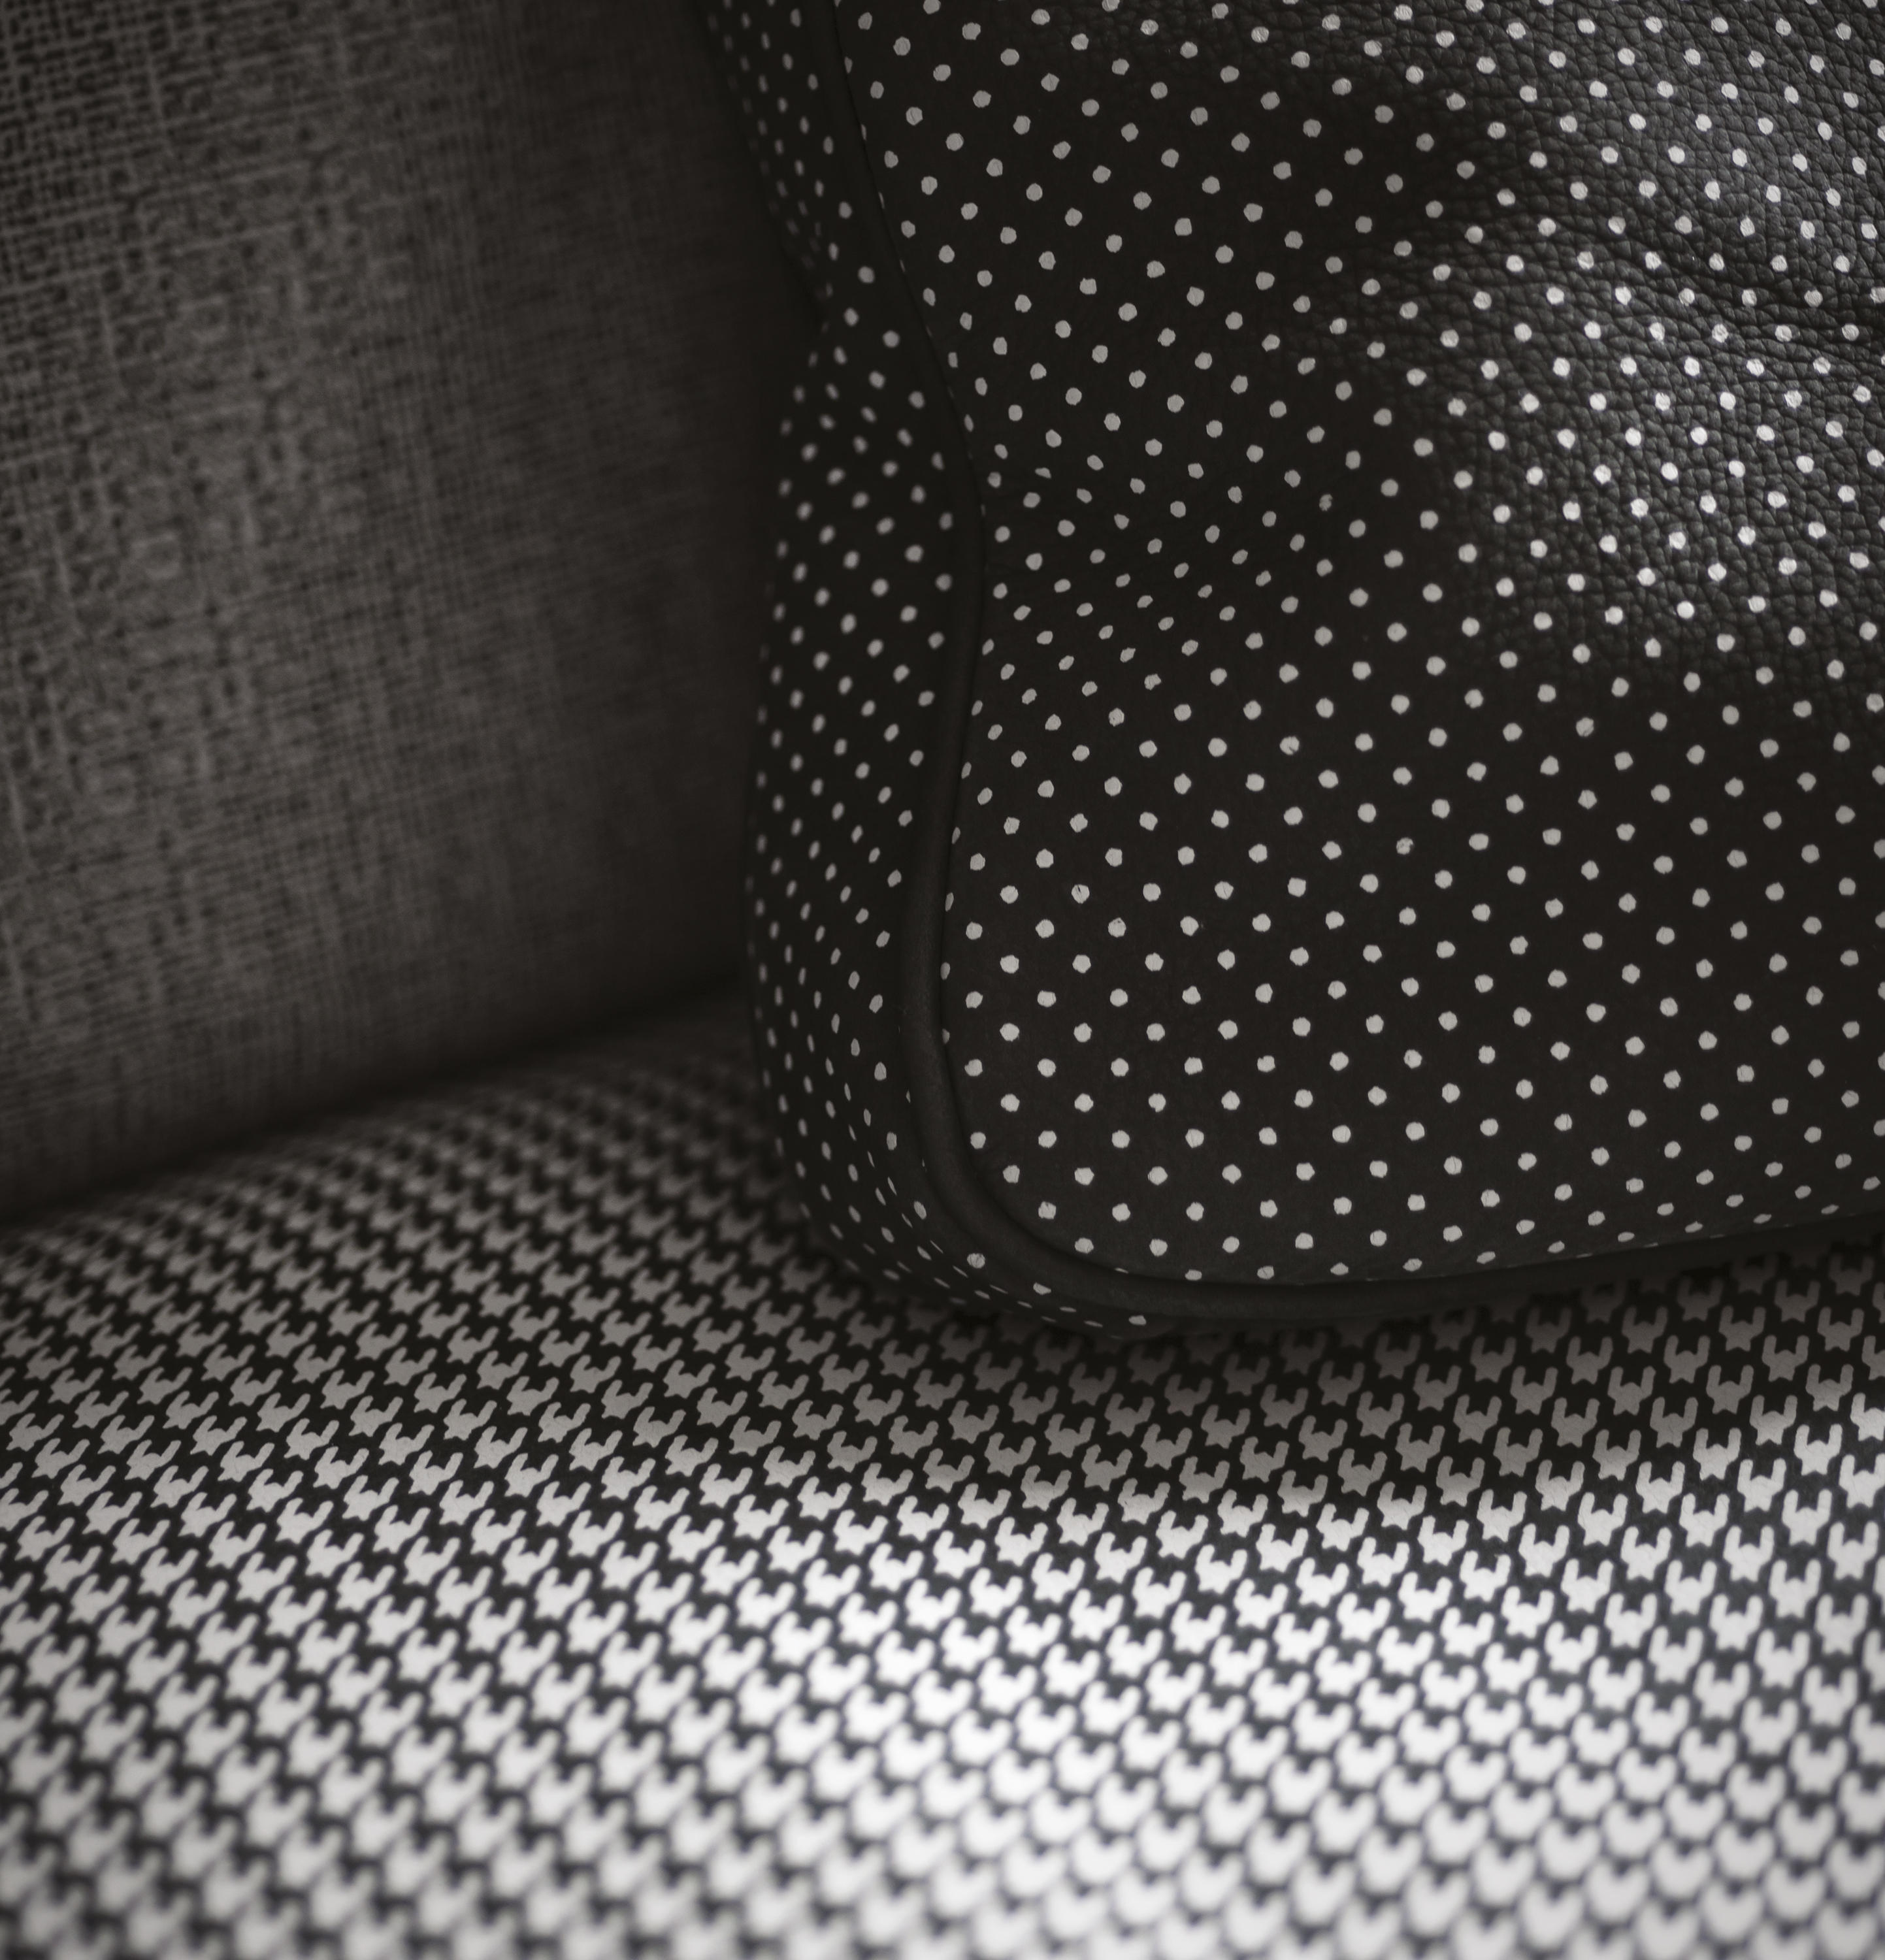 Berg 200 Re Armchair Pouf Lounge Chairs From Baxter